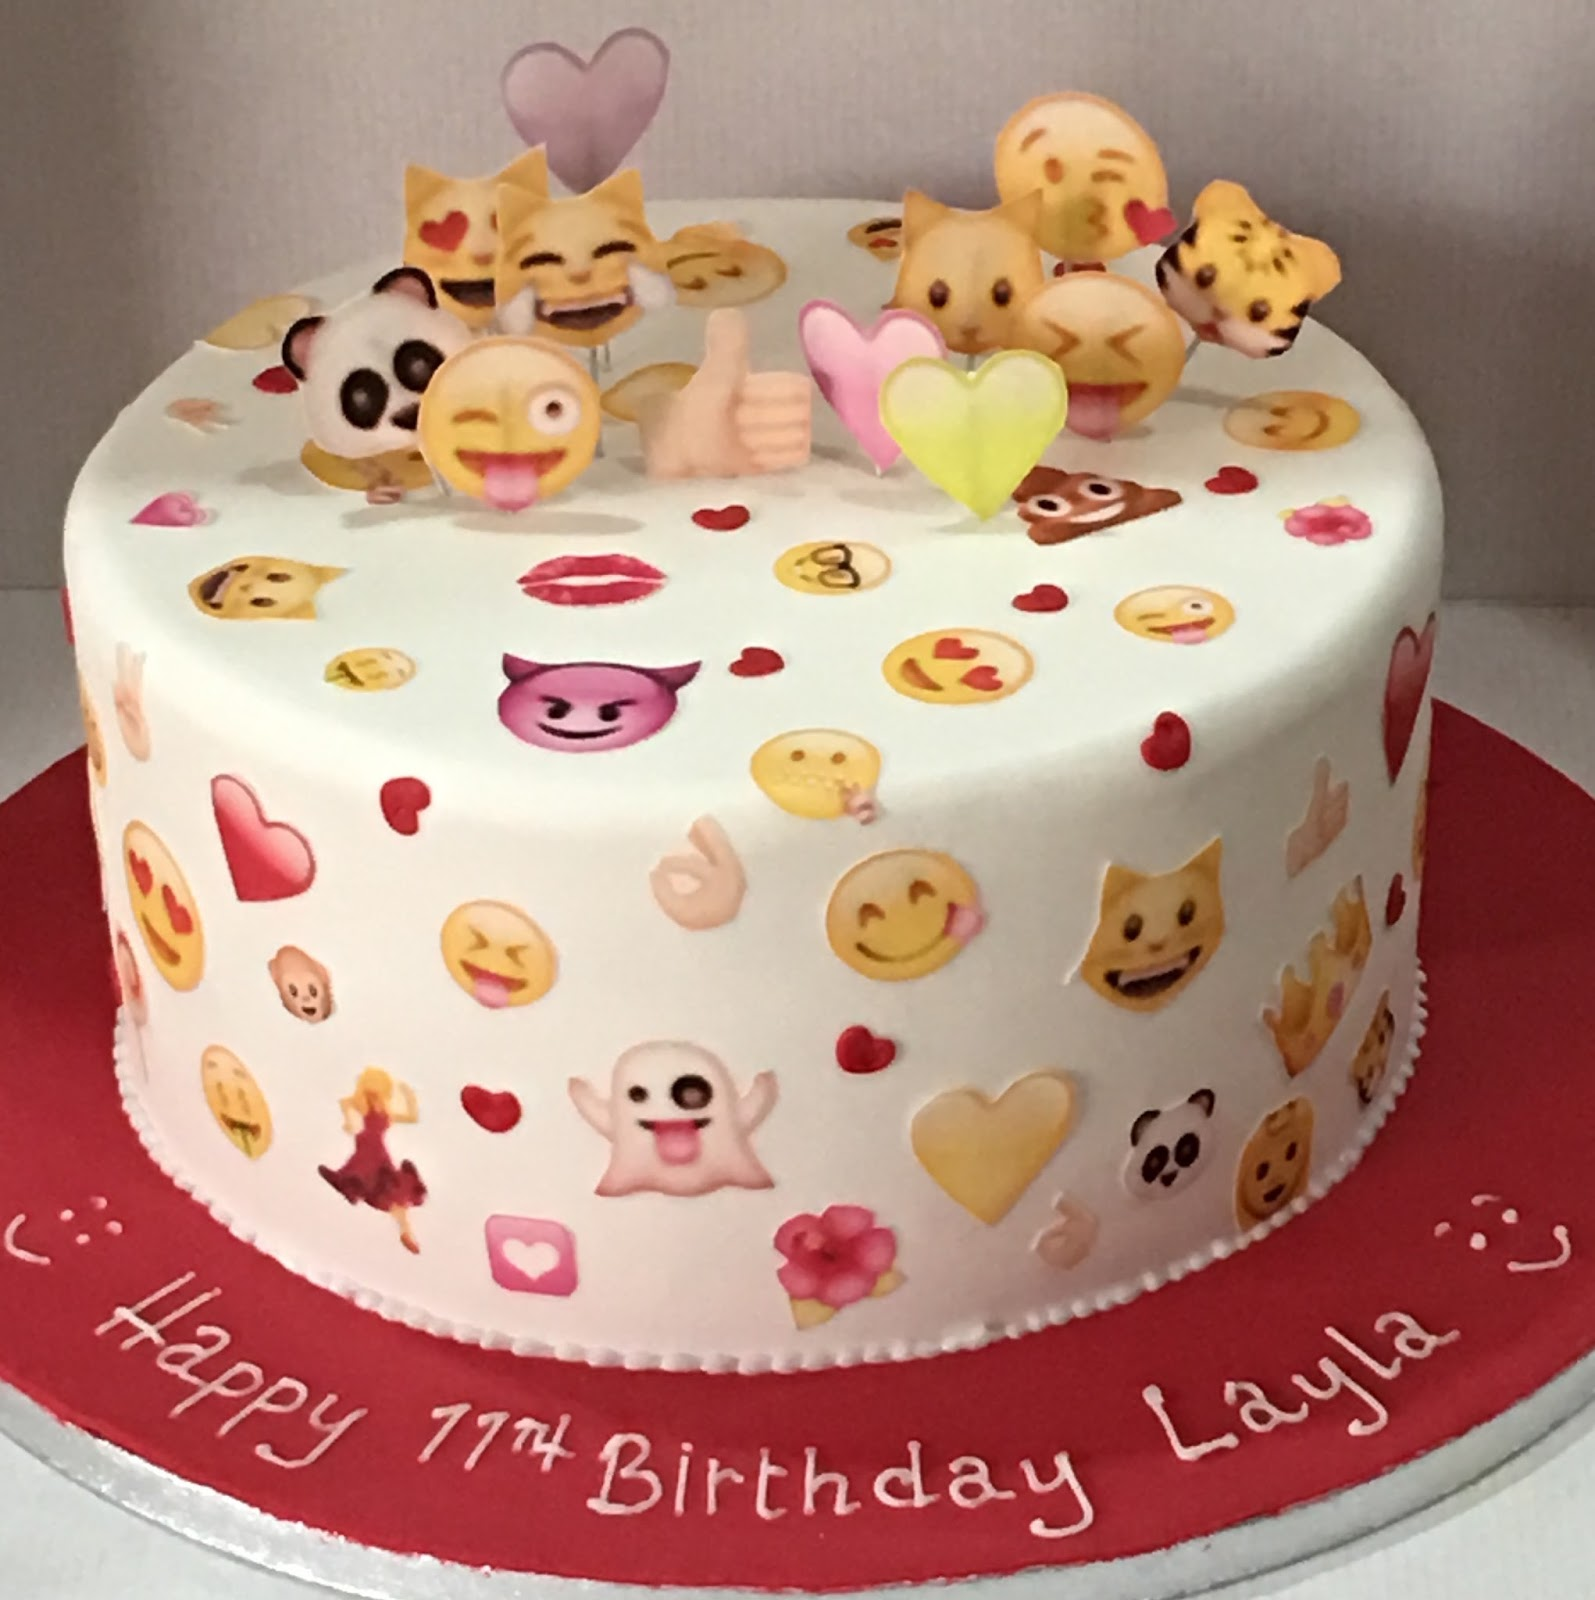 Best Birthday Cakes In Bahrain